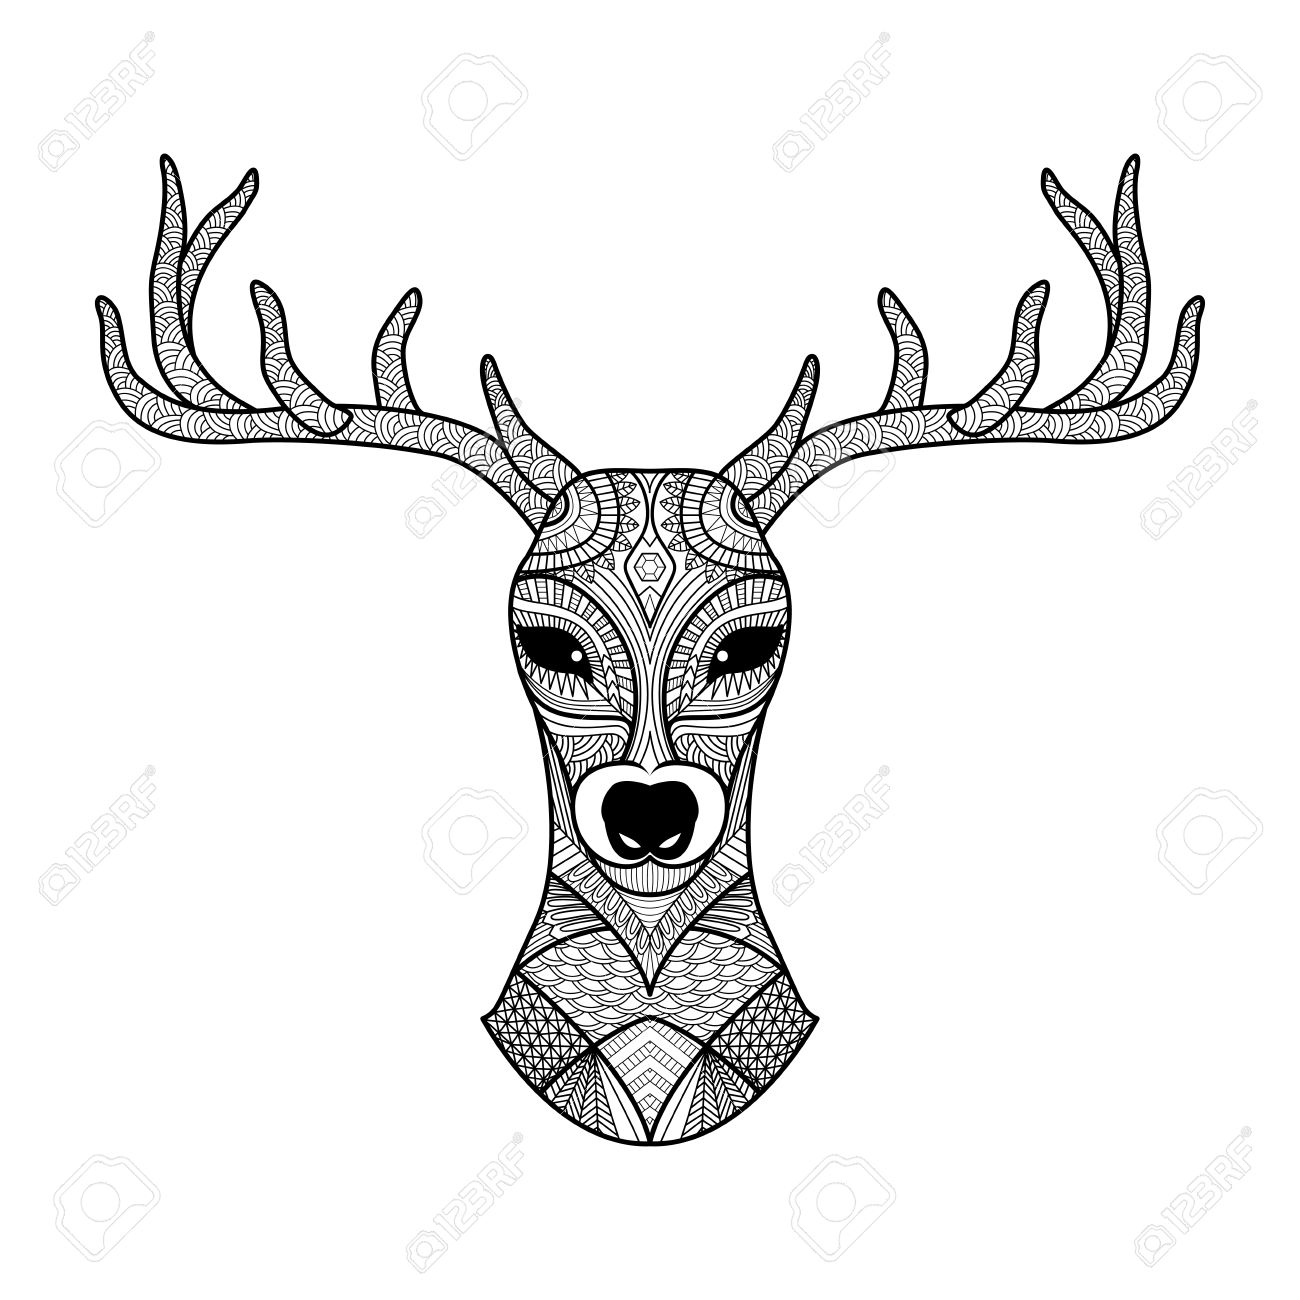 Detailed Zentangle Deer For Coloring Page Tattoo Shirt Design Logo And So On